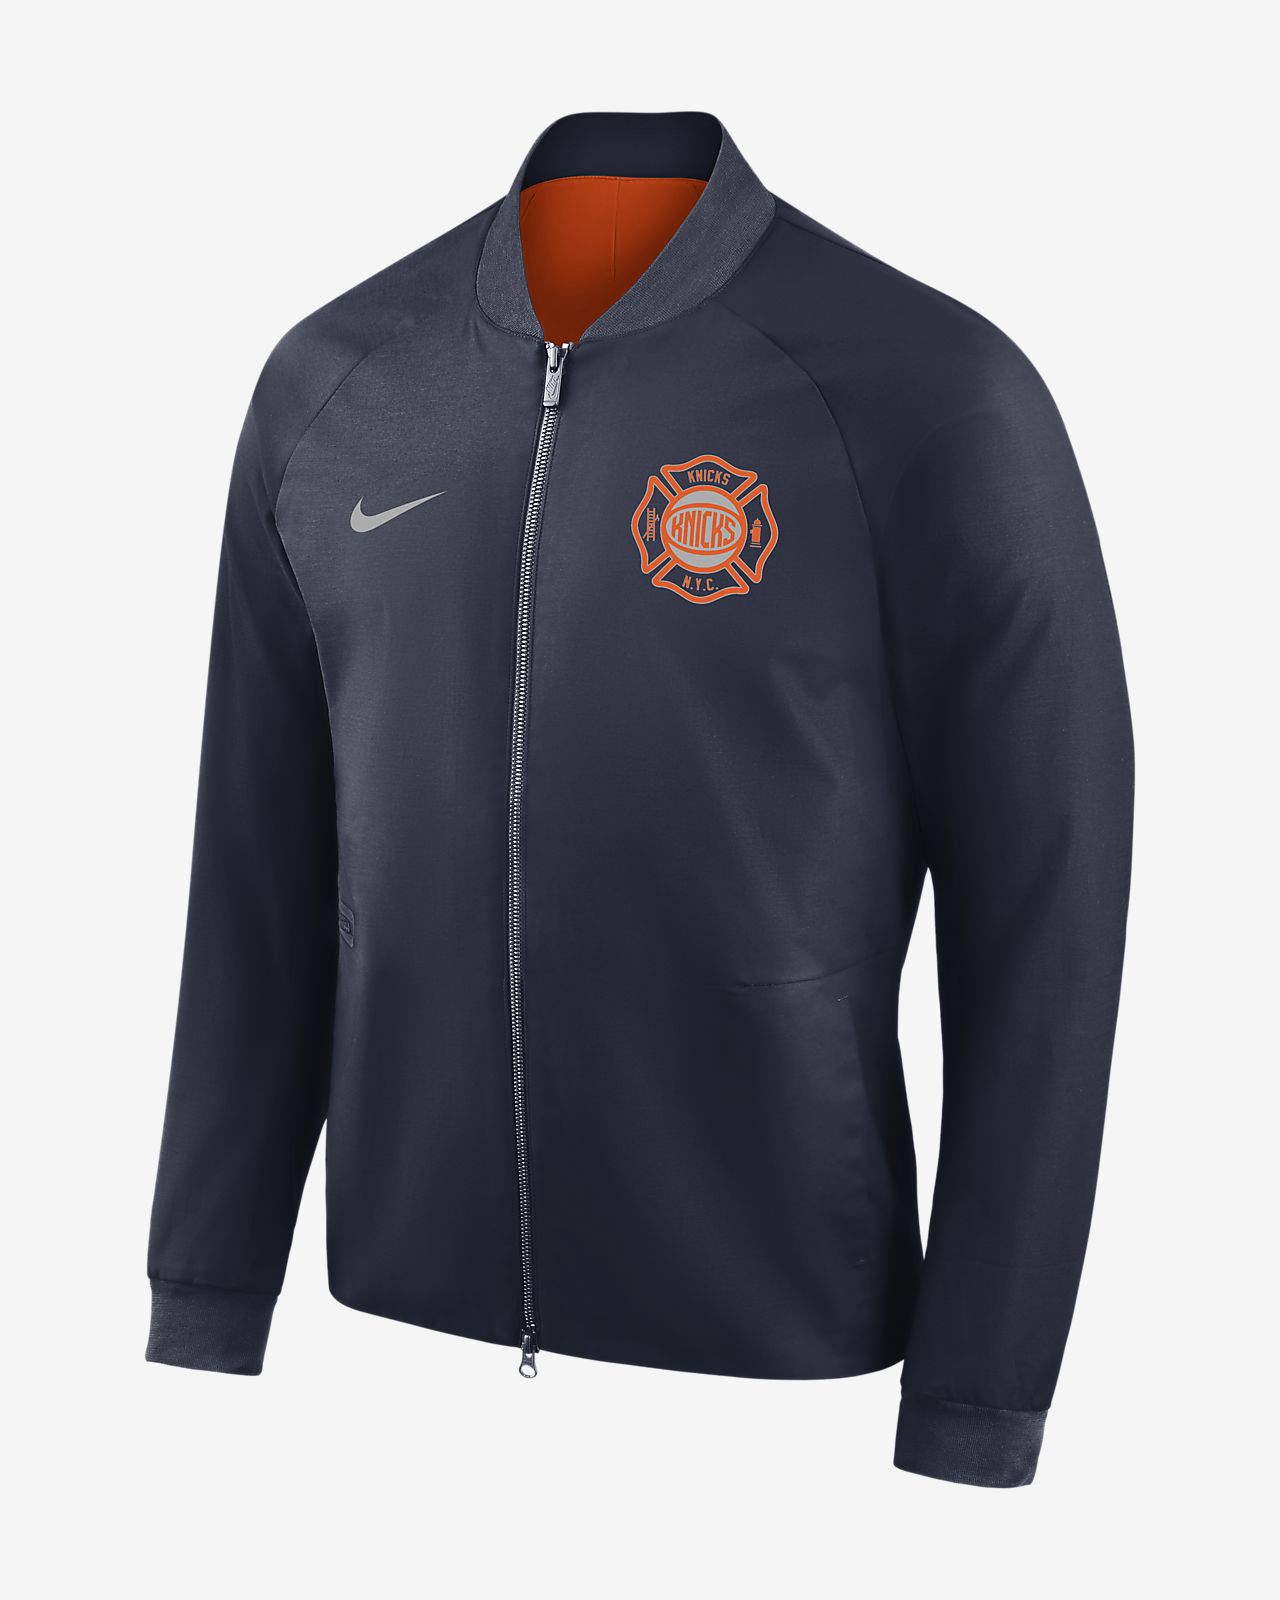 3f41d23ff2609 New York Knicks City Edition Nike Modern Men s NBA Varsity Jacket ...